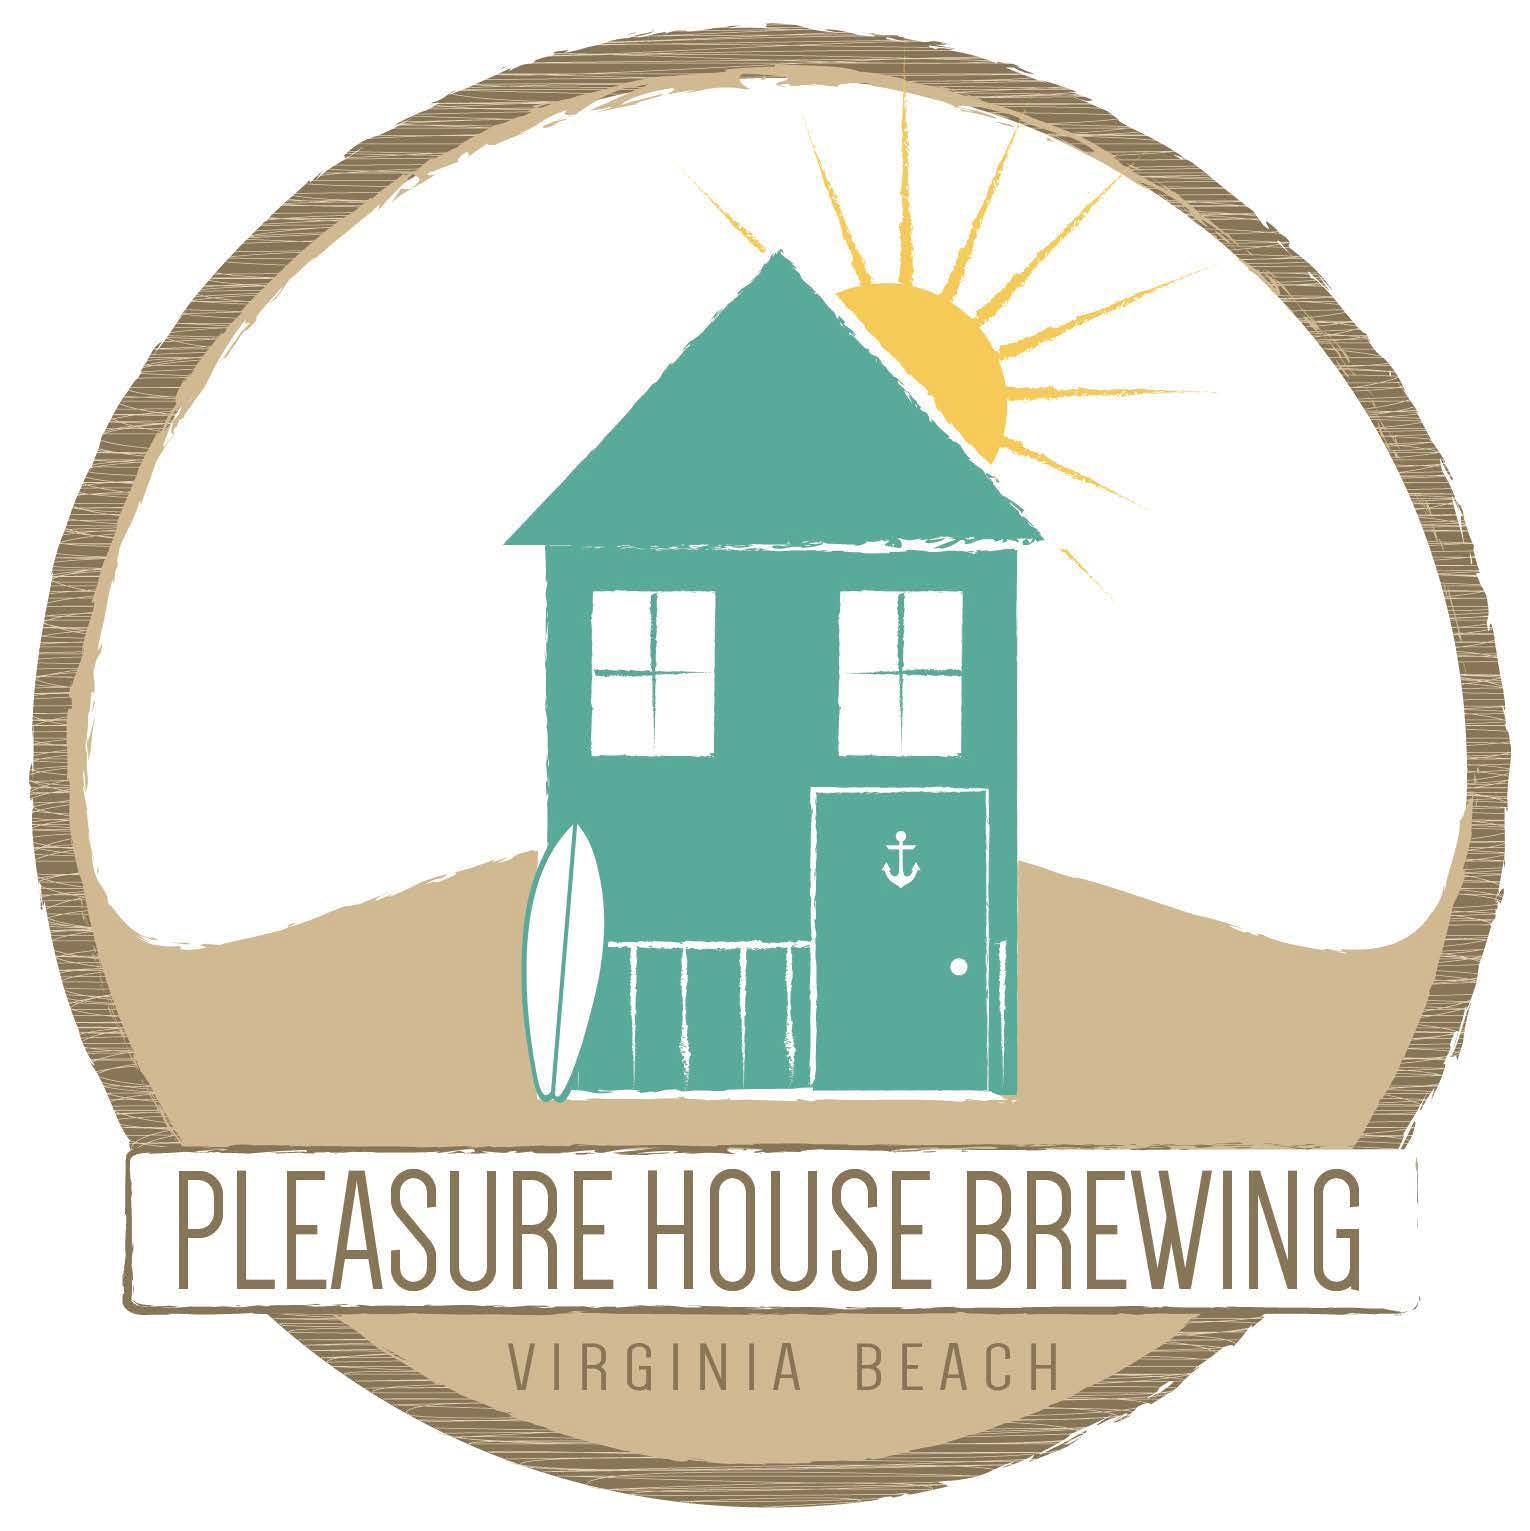 pleasure-house-brewing-company.jpg